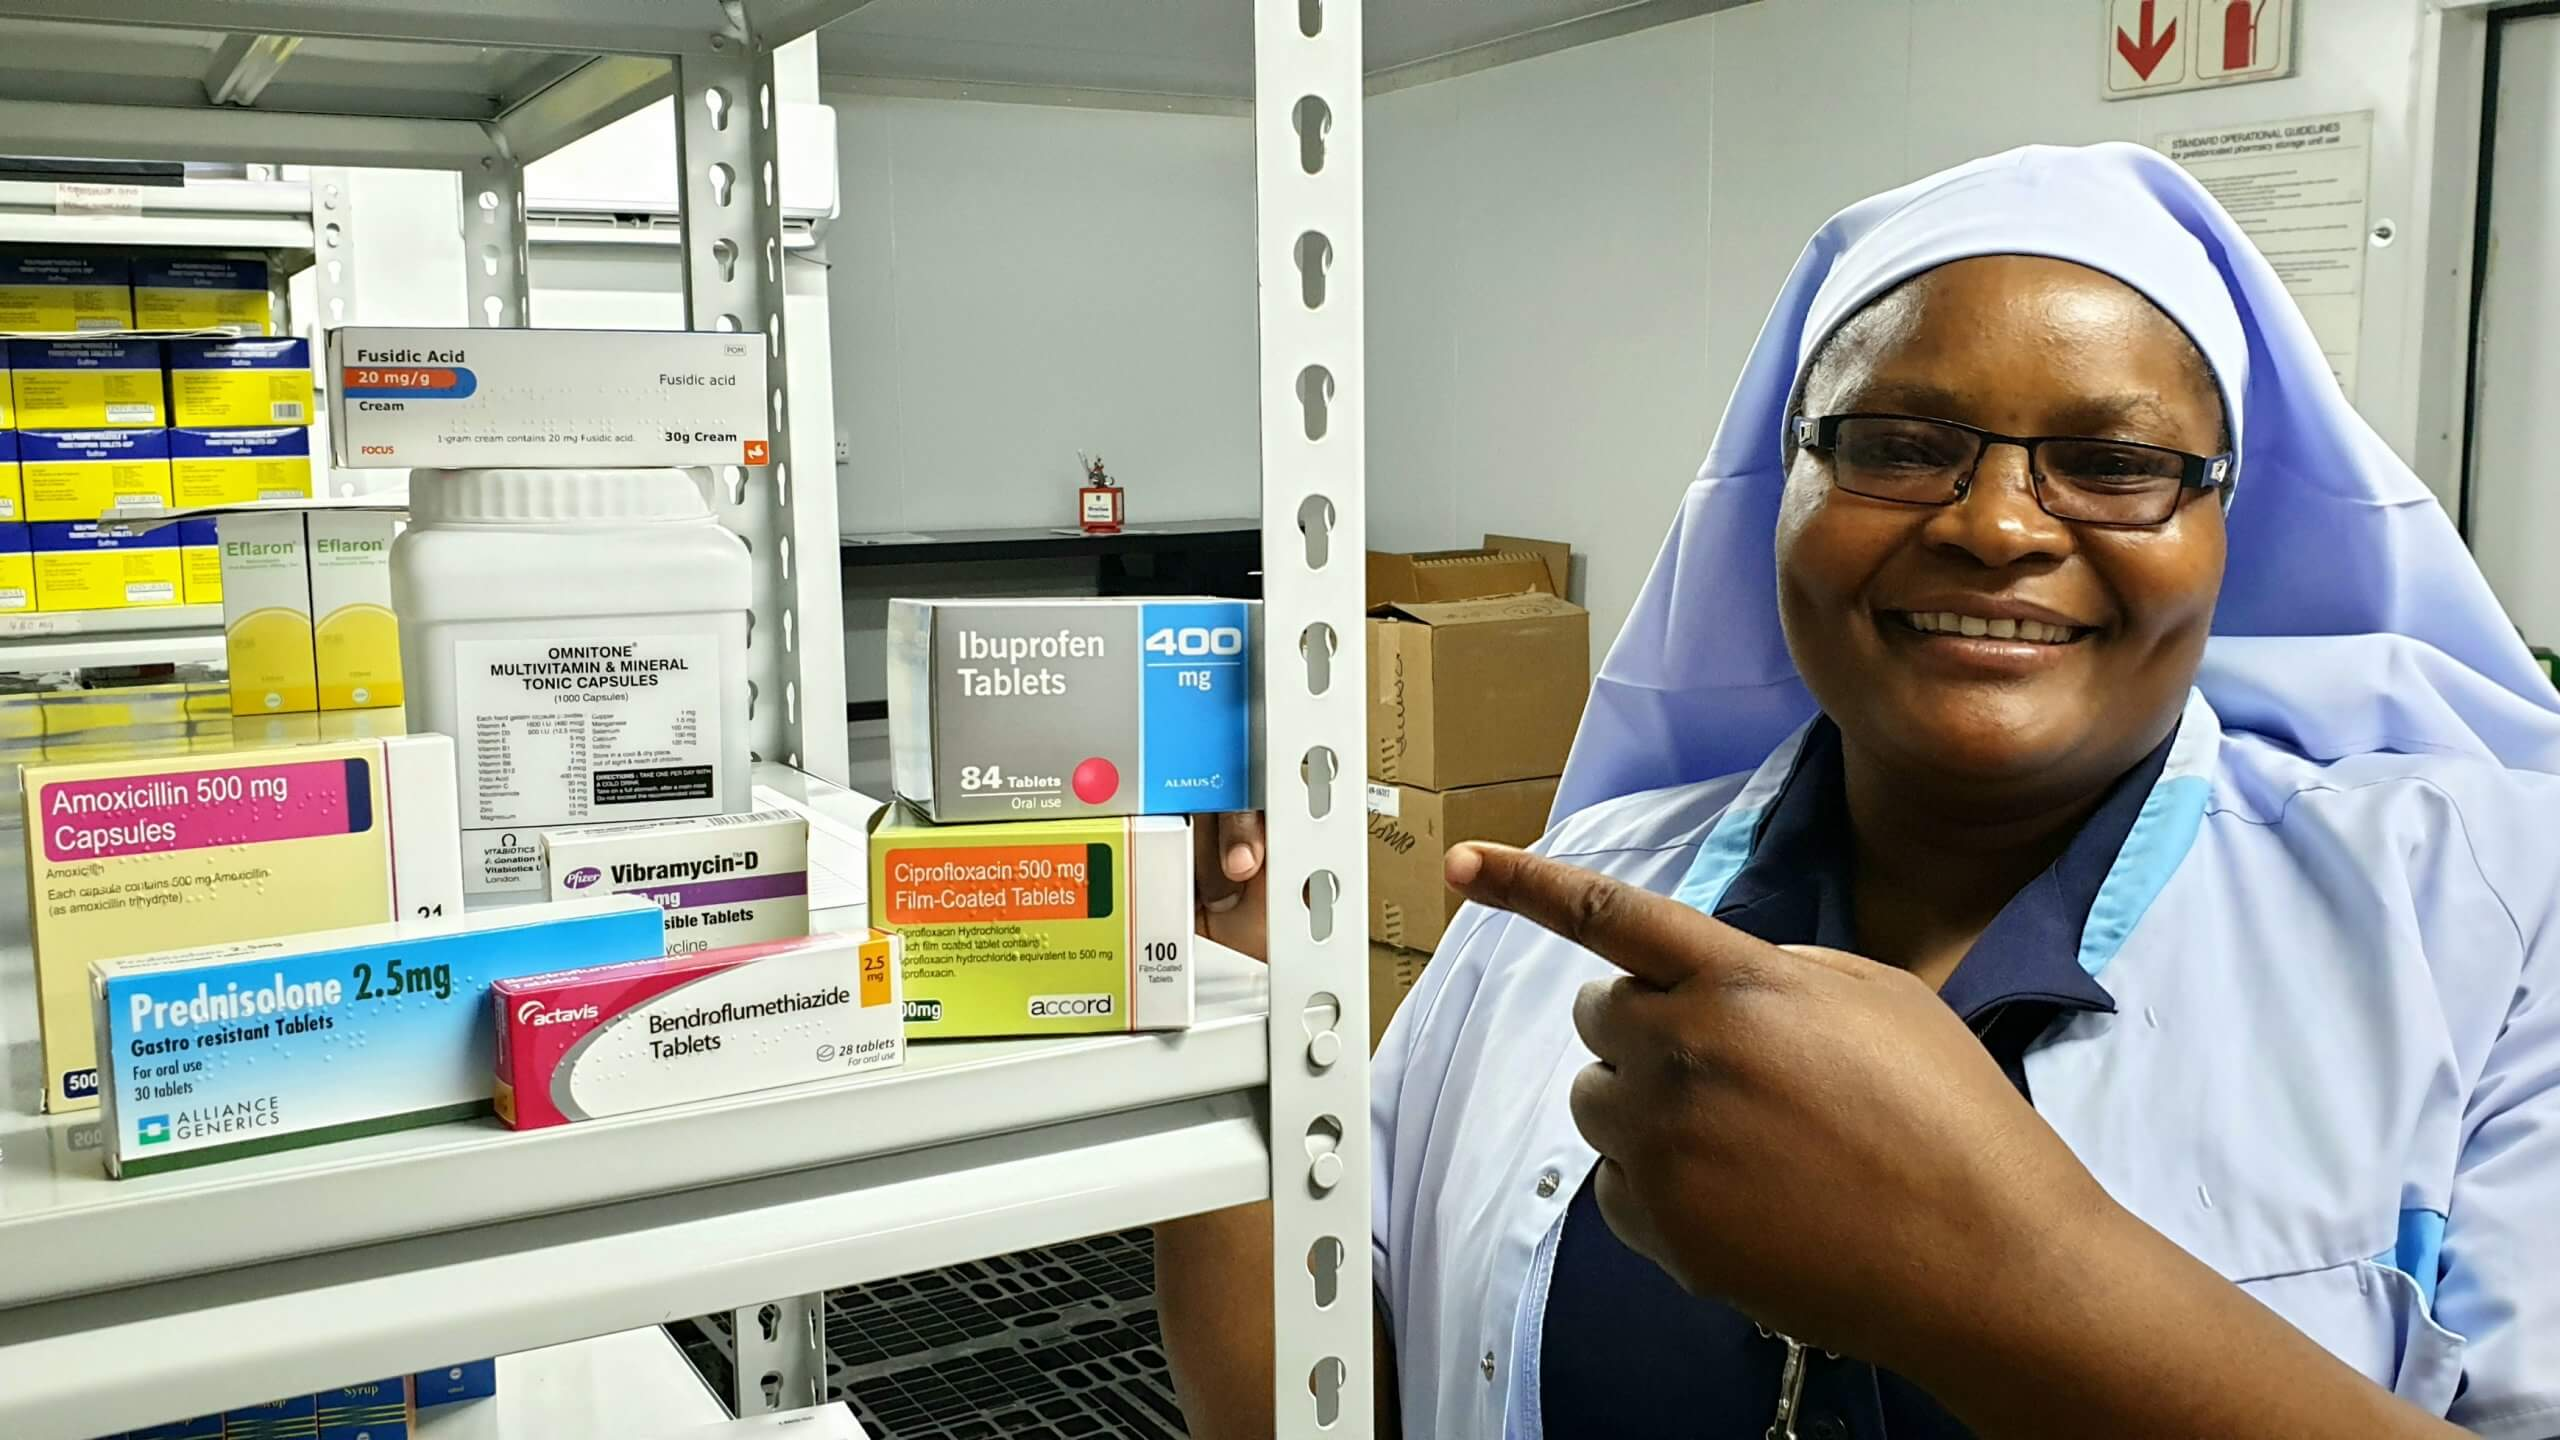 Meet Sr Teresa, the Medical Assistant at Nzama Health Centre